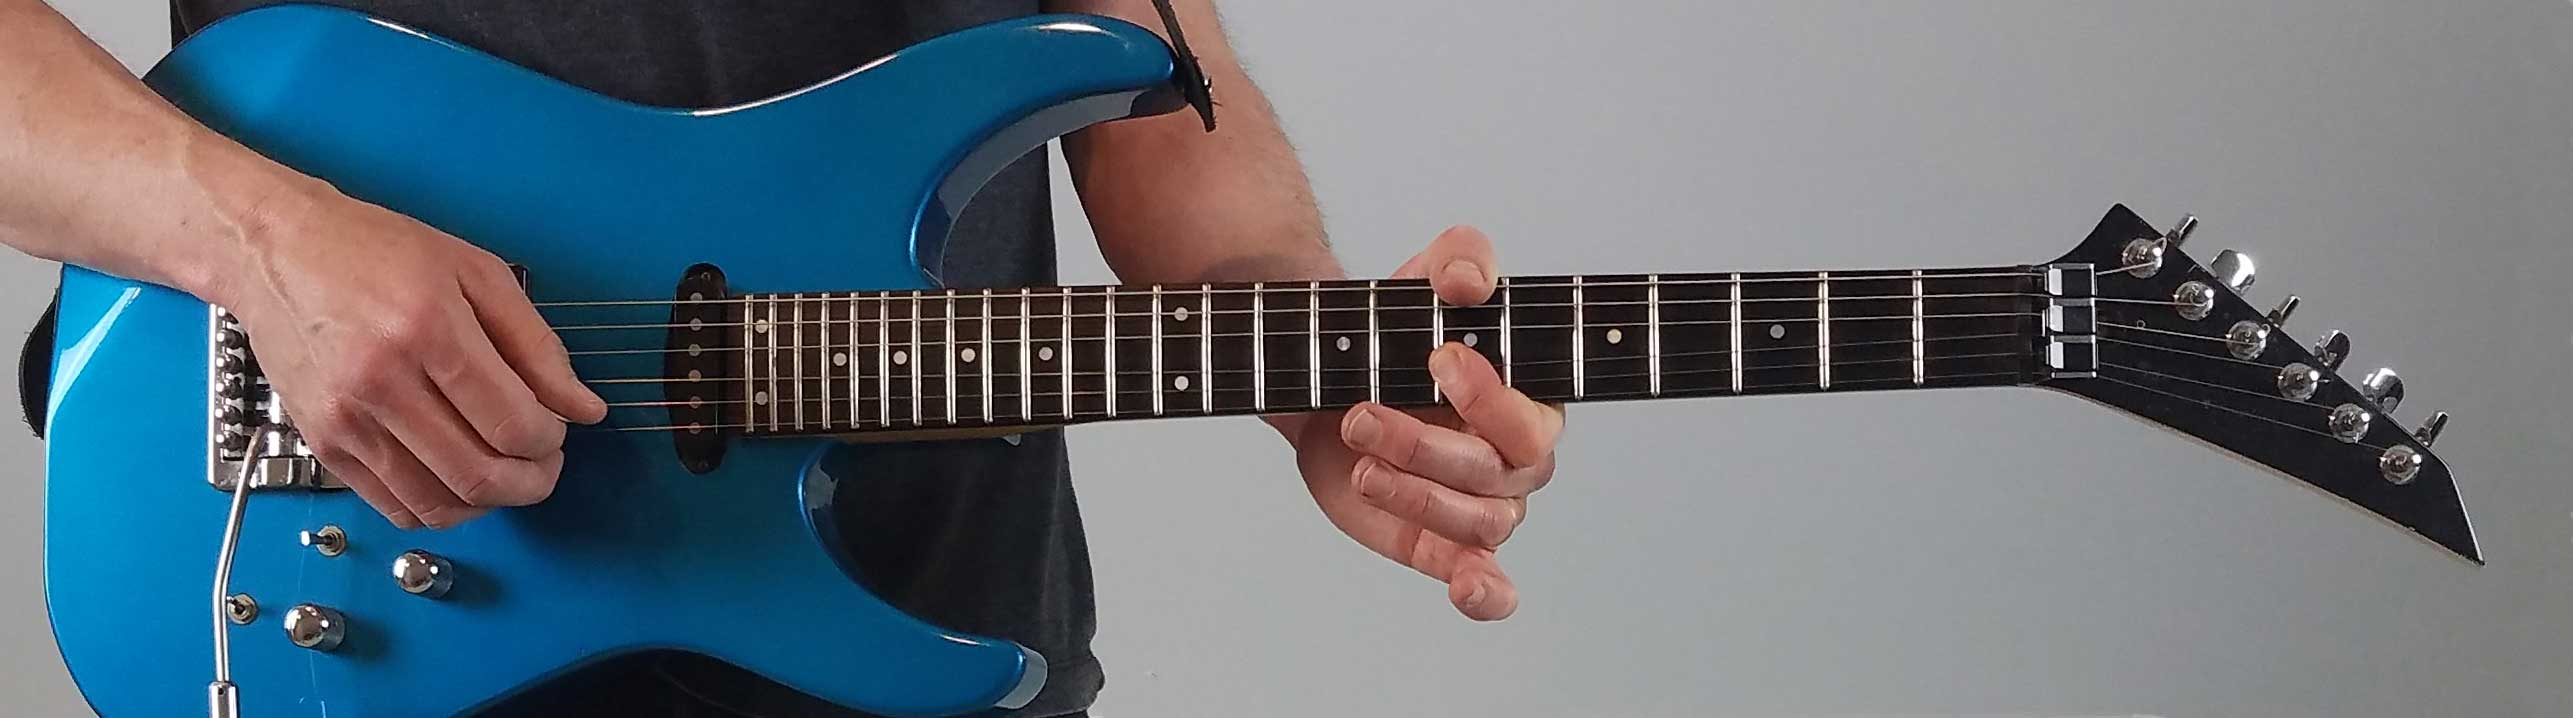 Blue guitar background